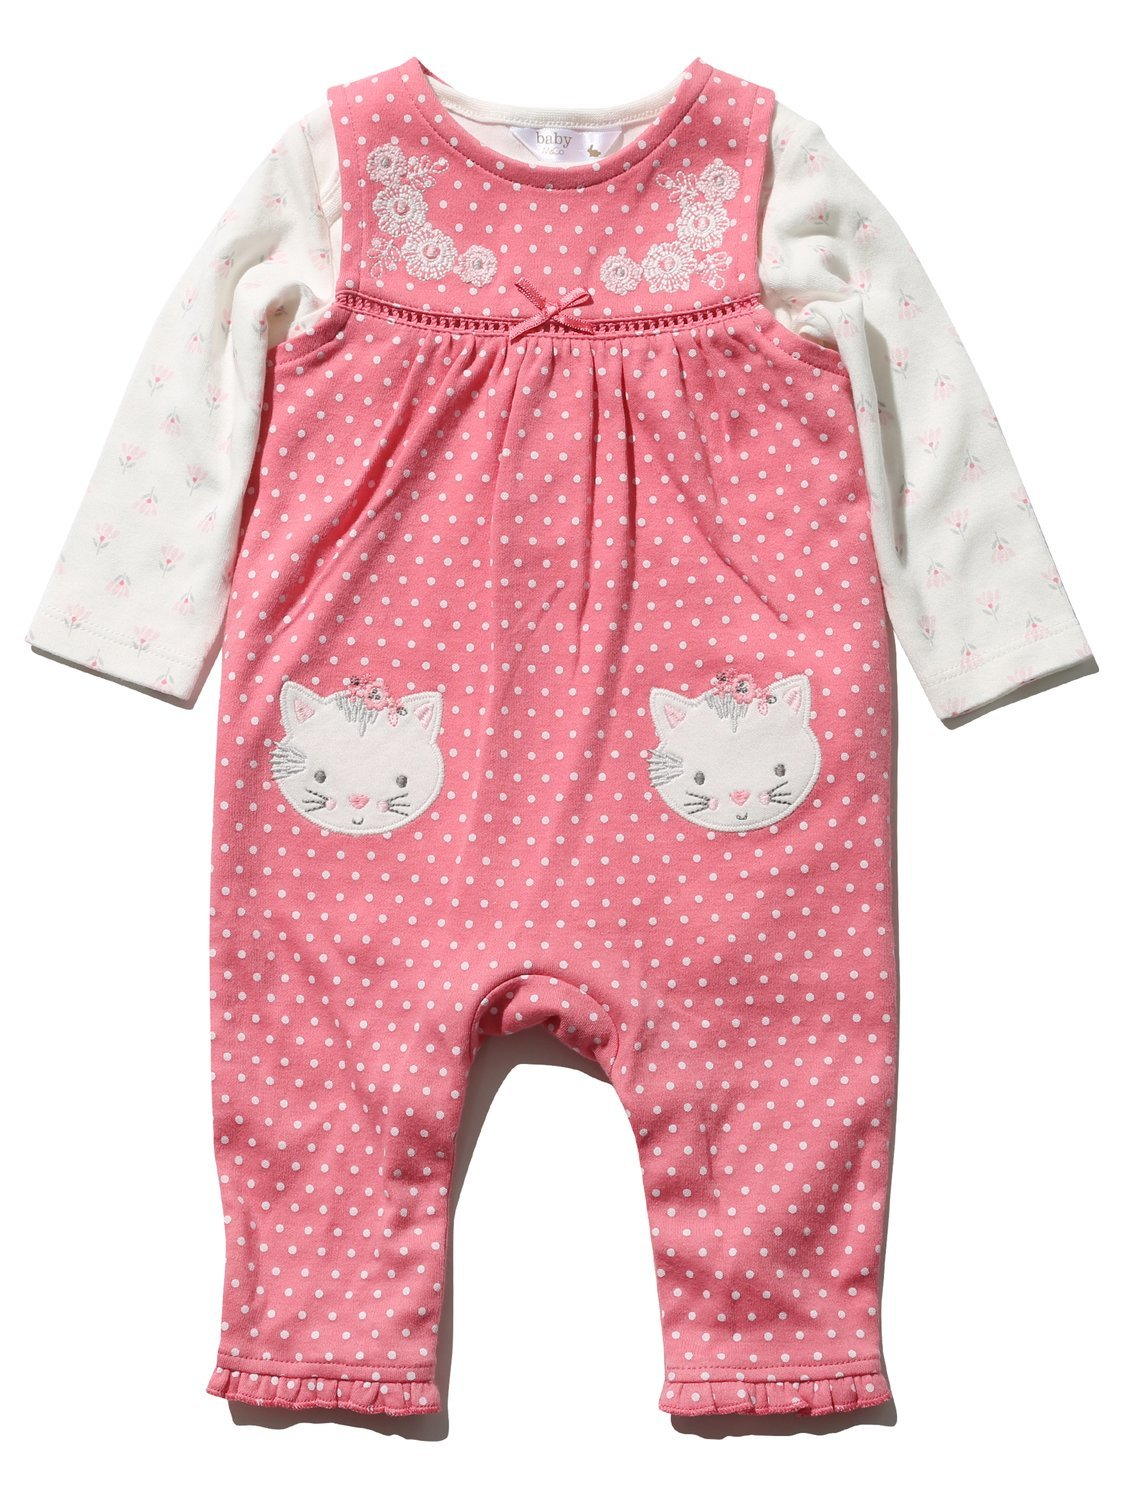 M&Co Newborn Baby Girl Pink Polka Dot Cat Applique Dungarees and Long Sleeve Top Set